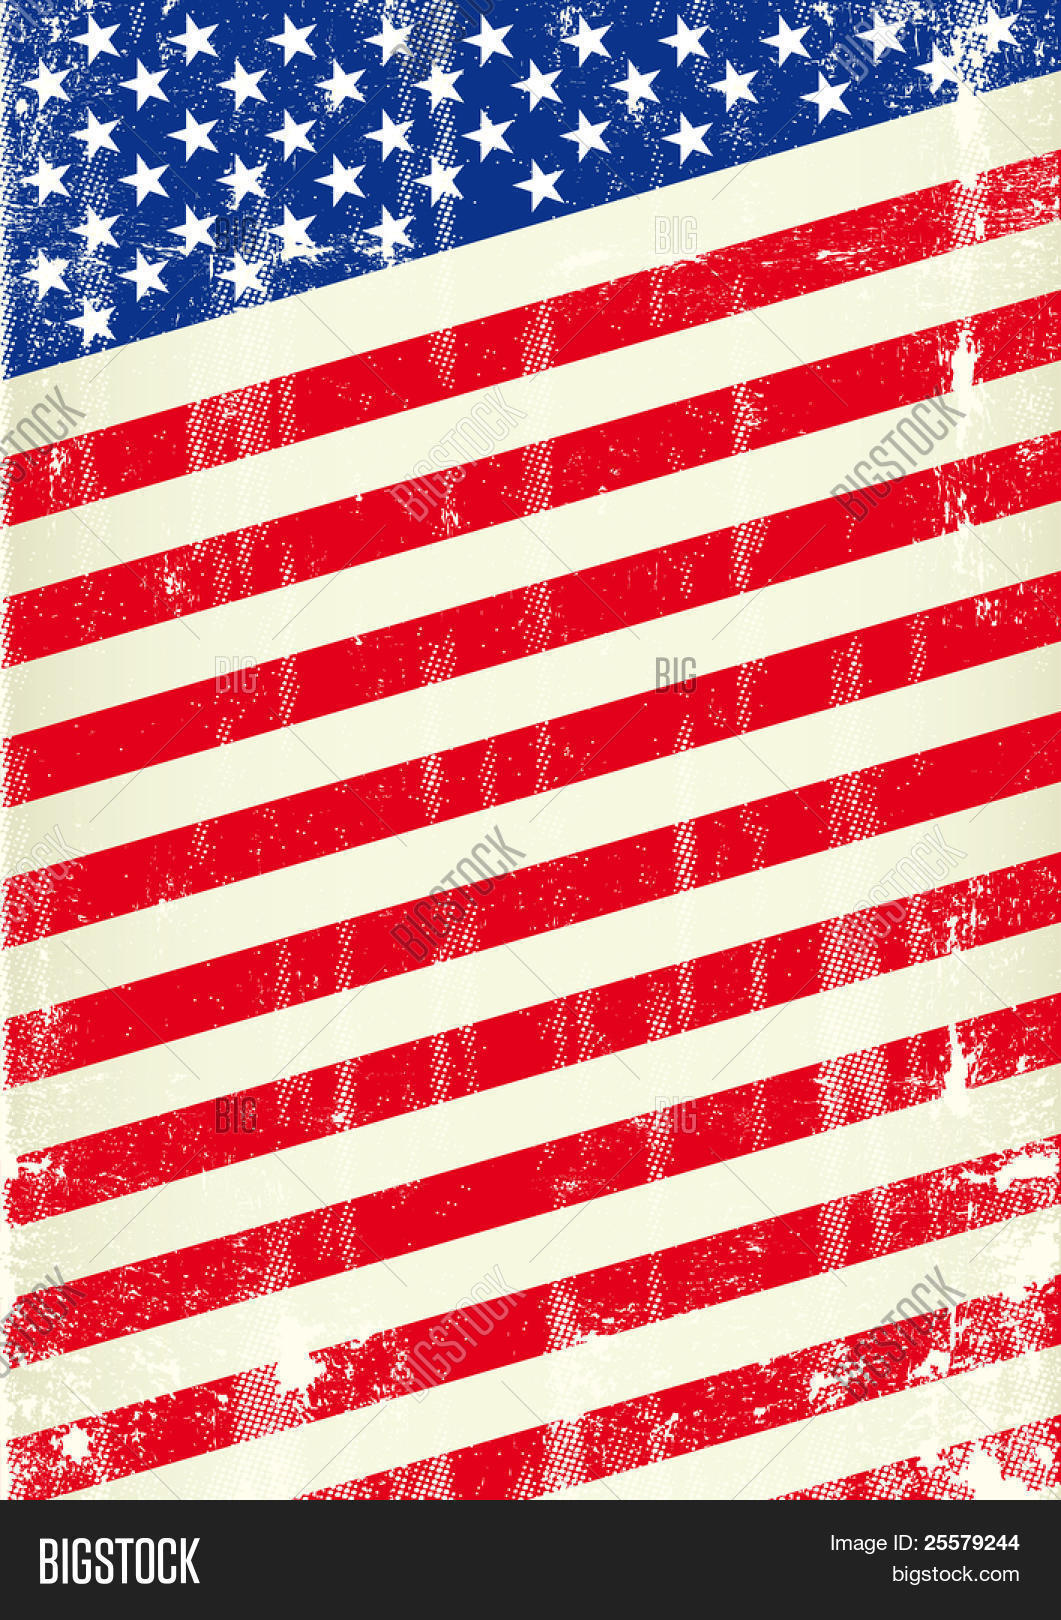 abstract,america,american,american flag,american flag background,background,brushed,celebration,copy,culture,day,democracy,destroyed,dirty,economy,flag,four,freedom,fun,grained,grunge,history,independence,july,language,liberty,meeting,memorial,nation,national,old,paper,patriotic,politic,poster,power,republican,retro,shapes,sign,space,star,states,striped,symbol,texture,torn,tradition,us,usa,used,word